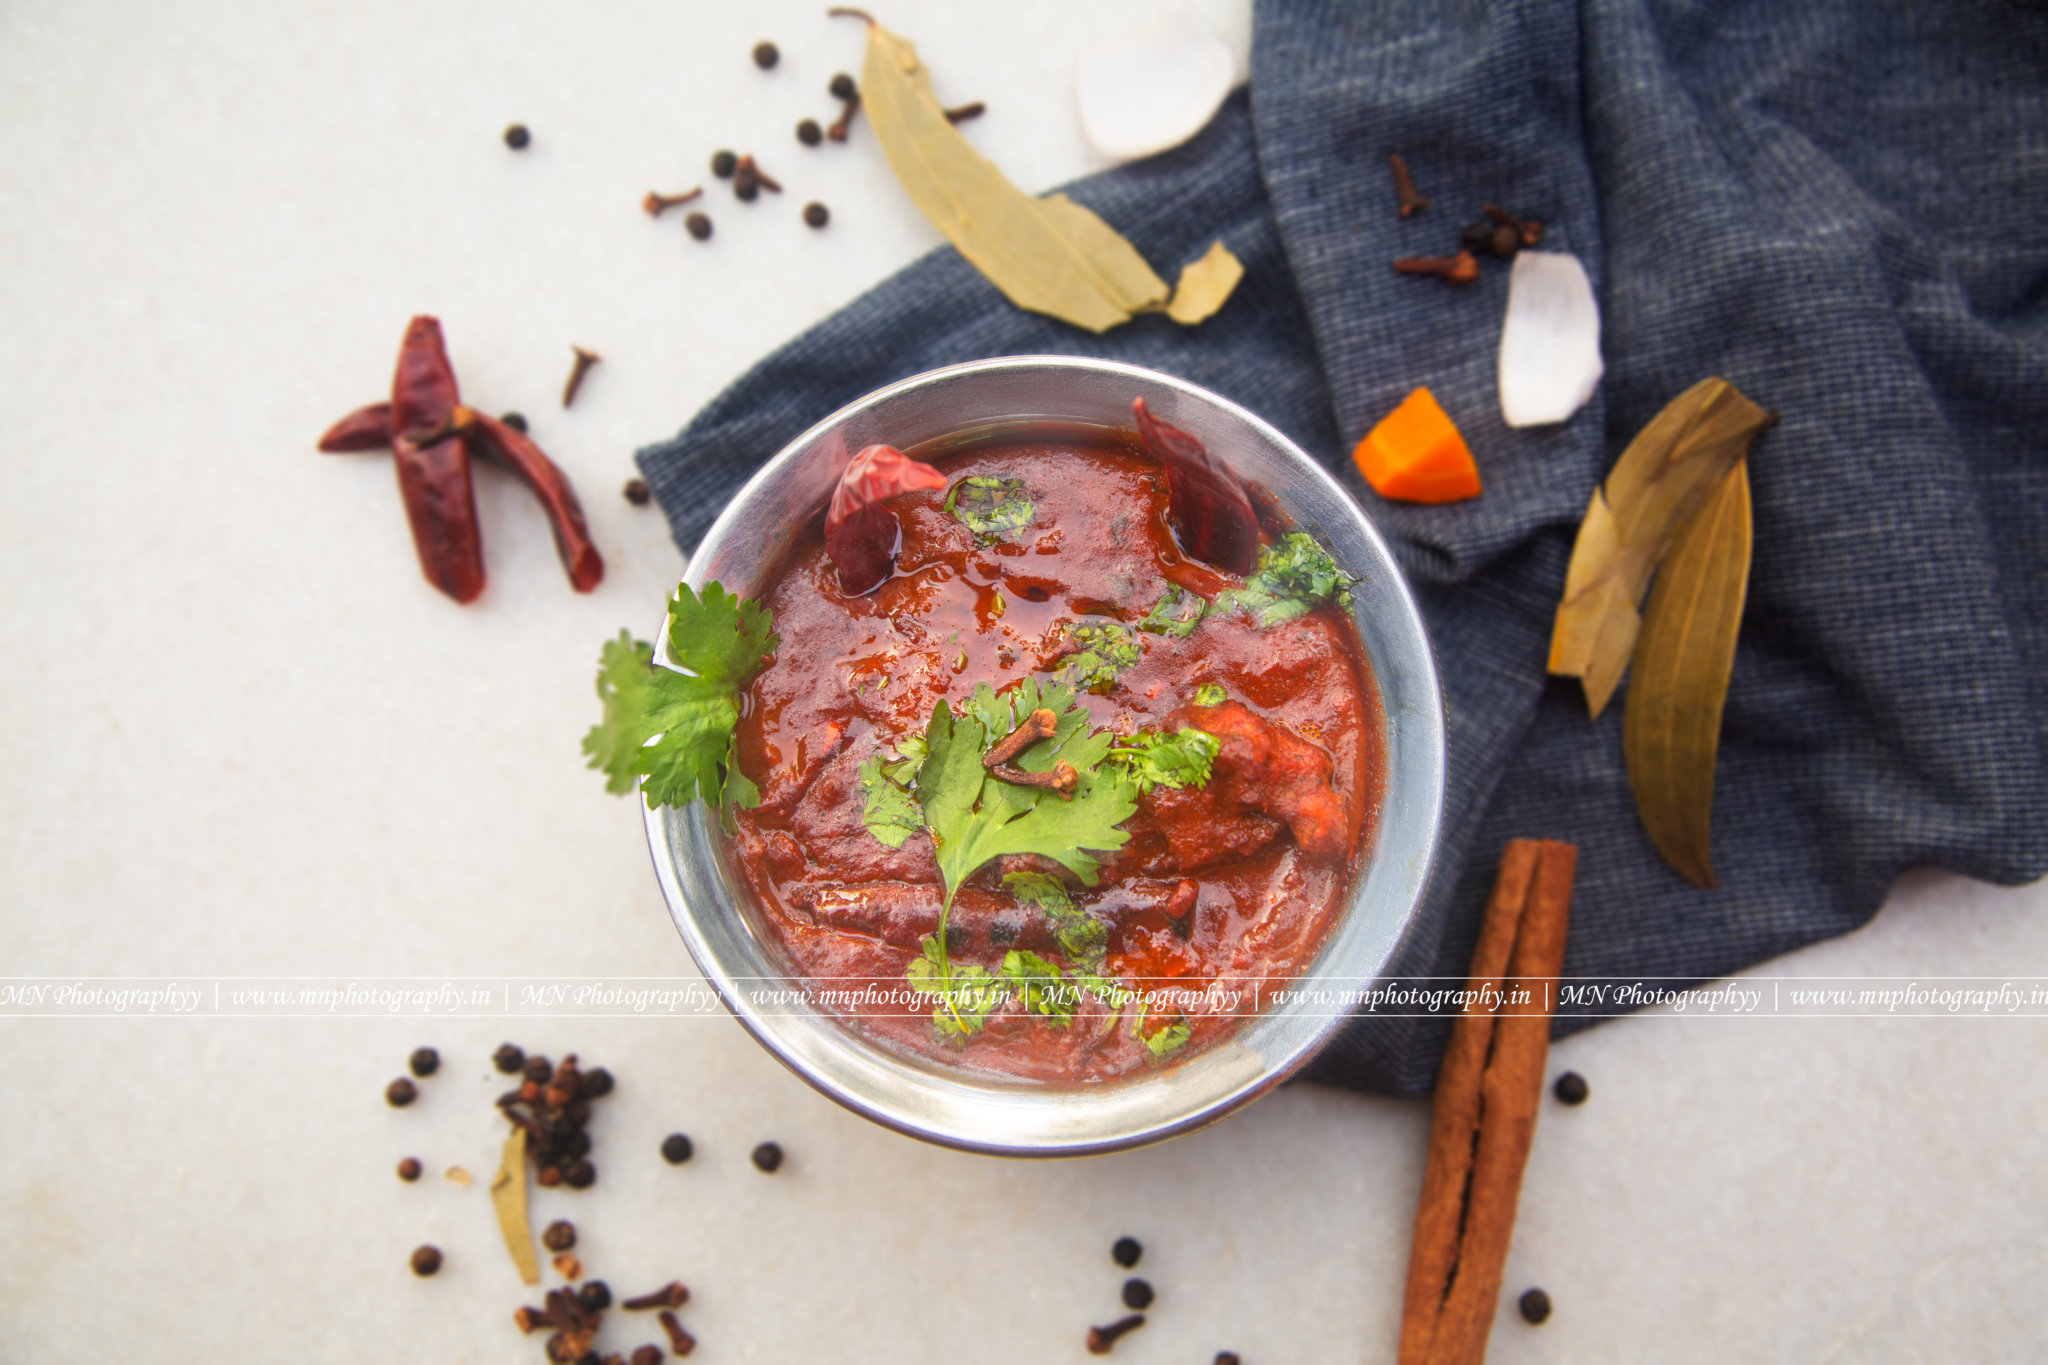 best food photography by MN Photography udaipur